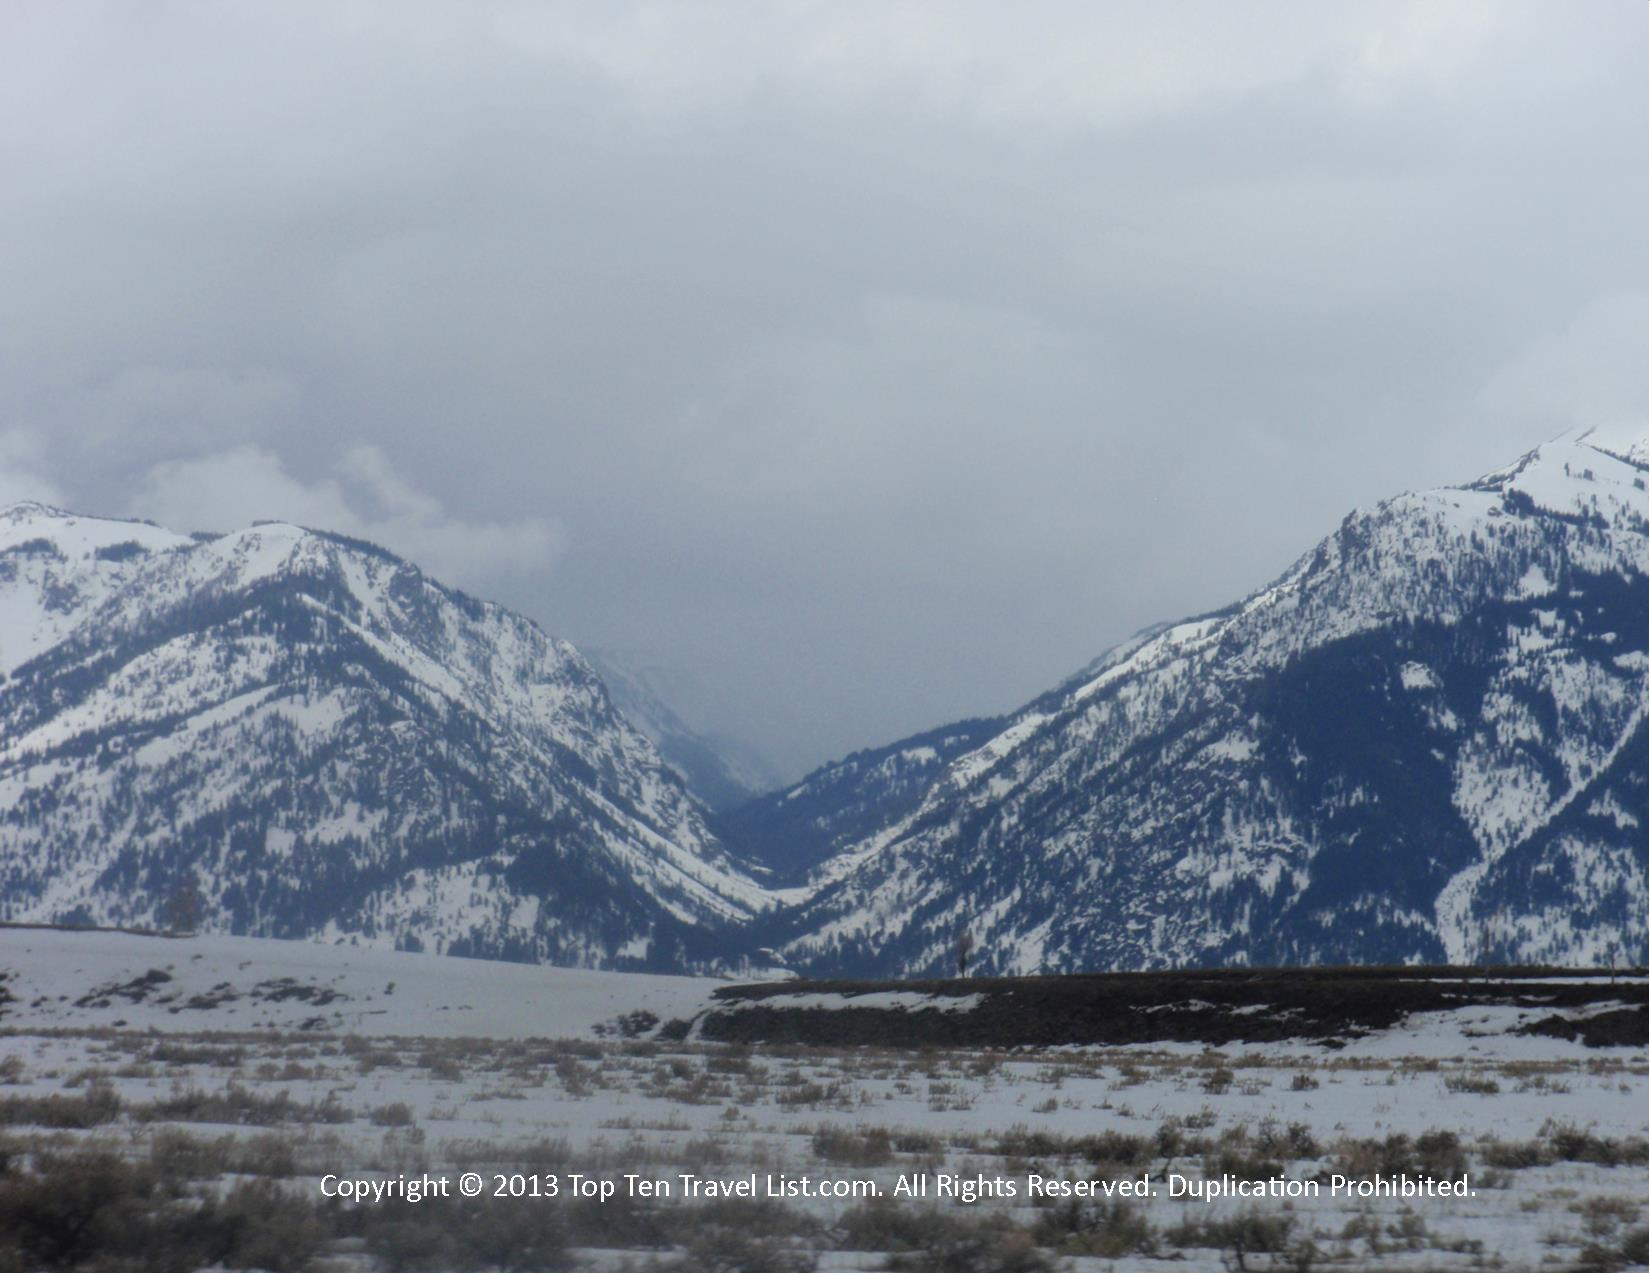 Gorgeous snow capped mountains at the Grand Tetons